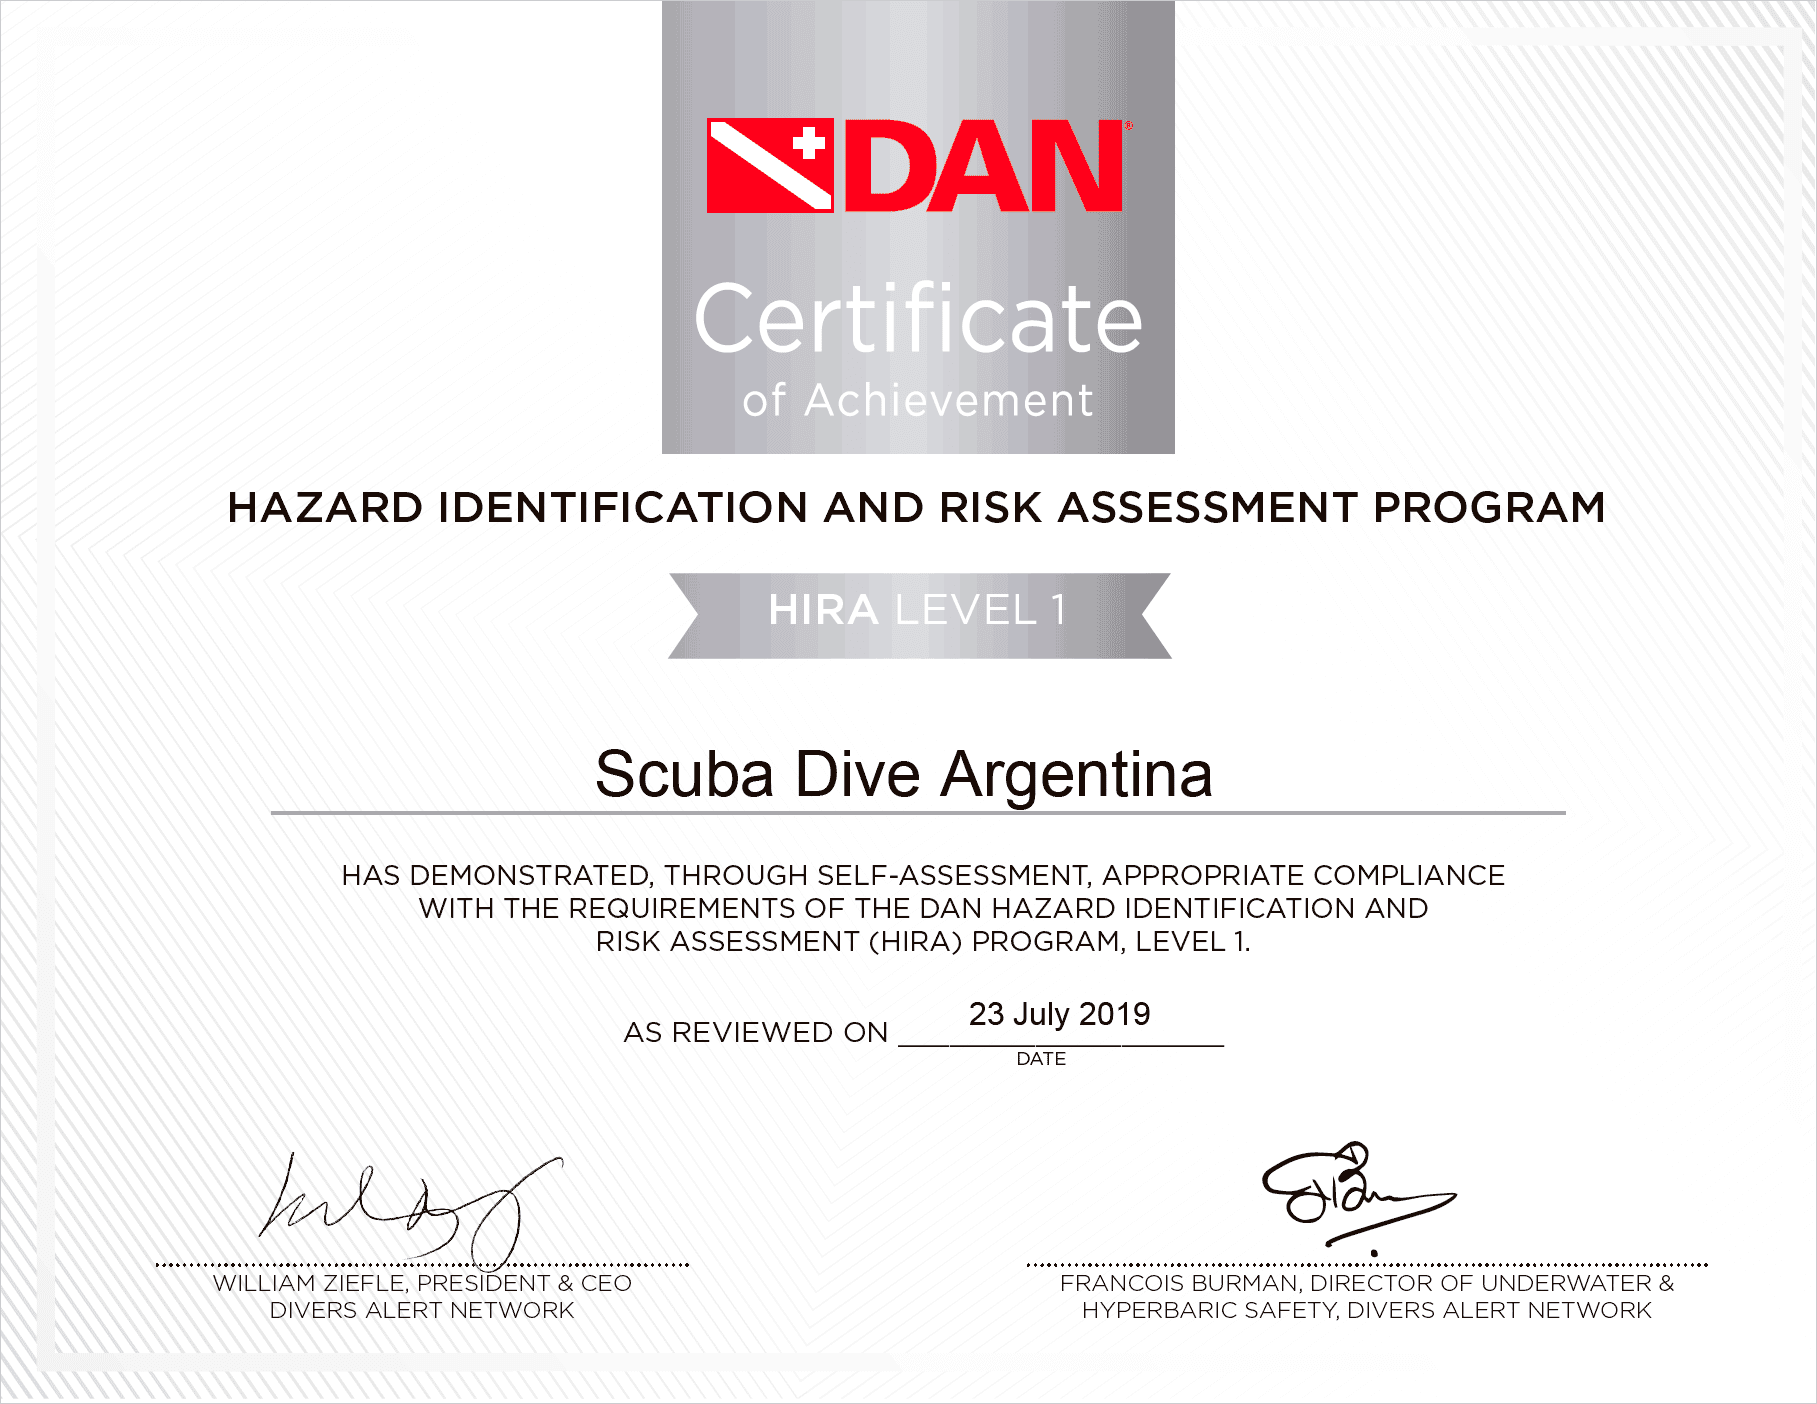 HIRA level 1 Scuba Dive Argentina